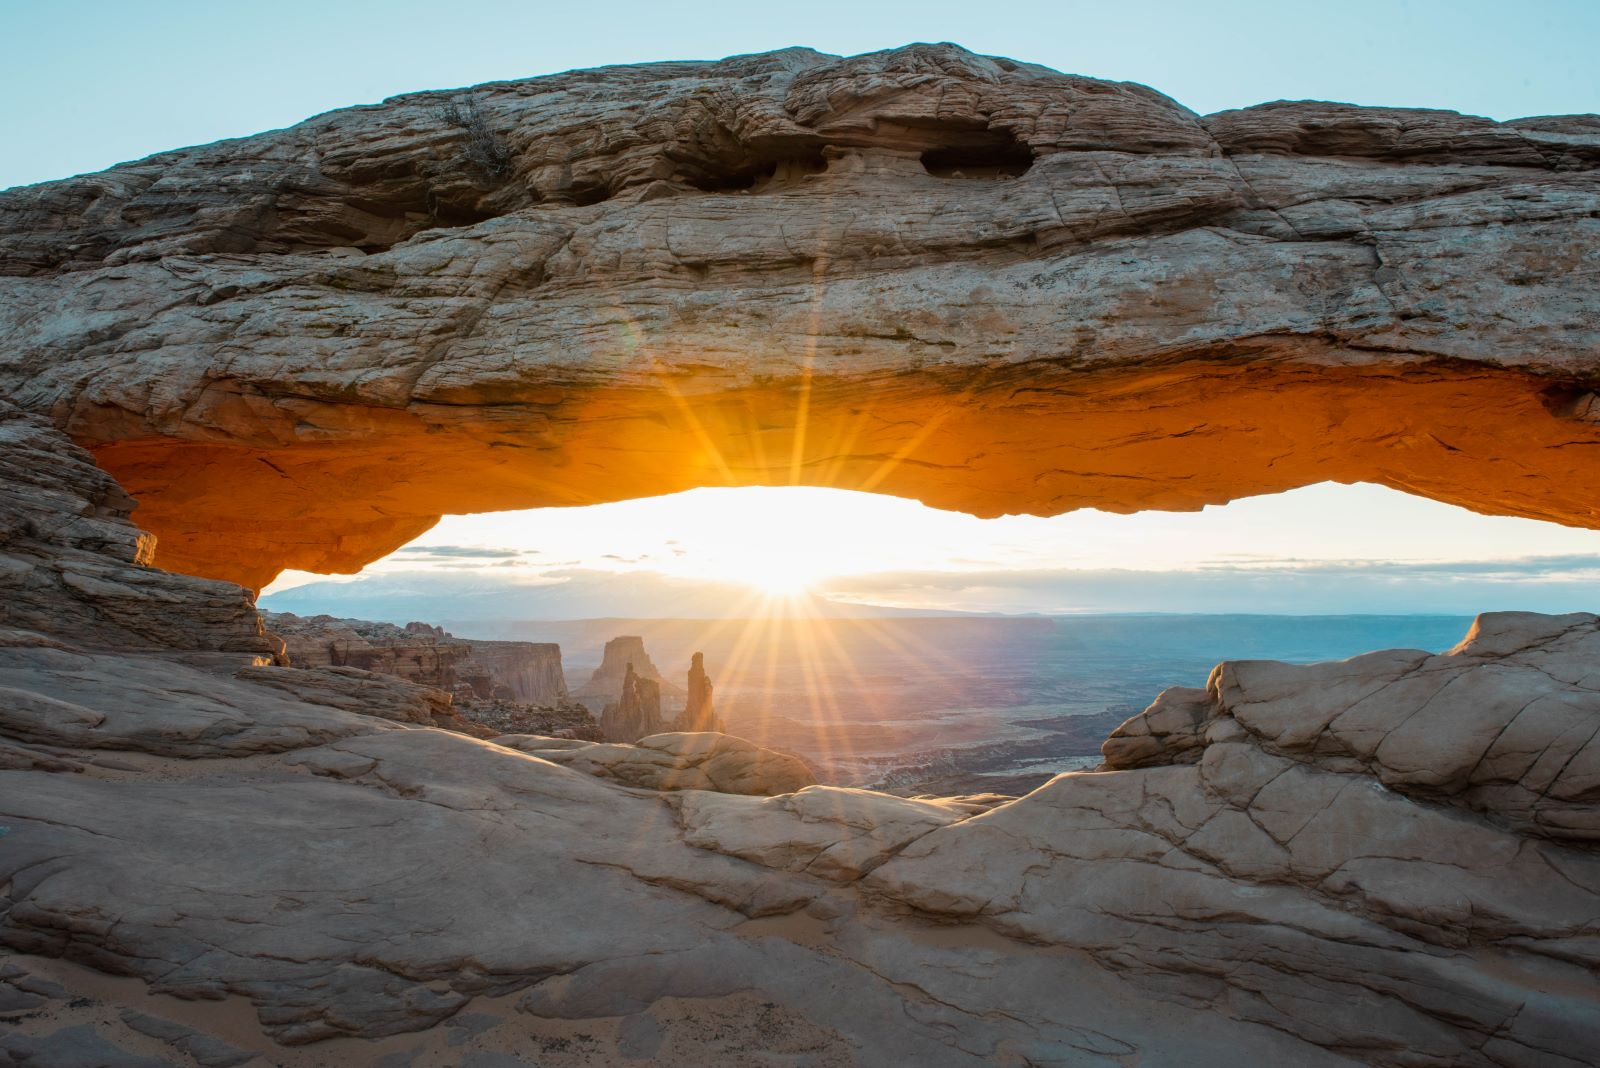 Mesa arch at sunrise glowing red with sun starburst